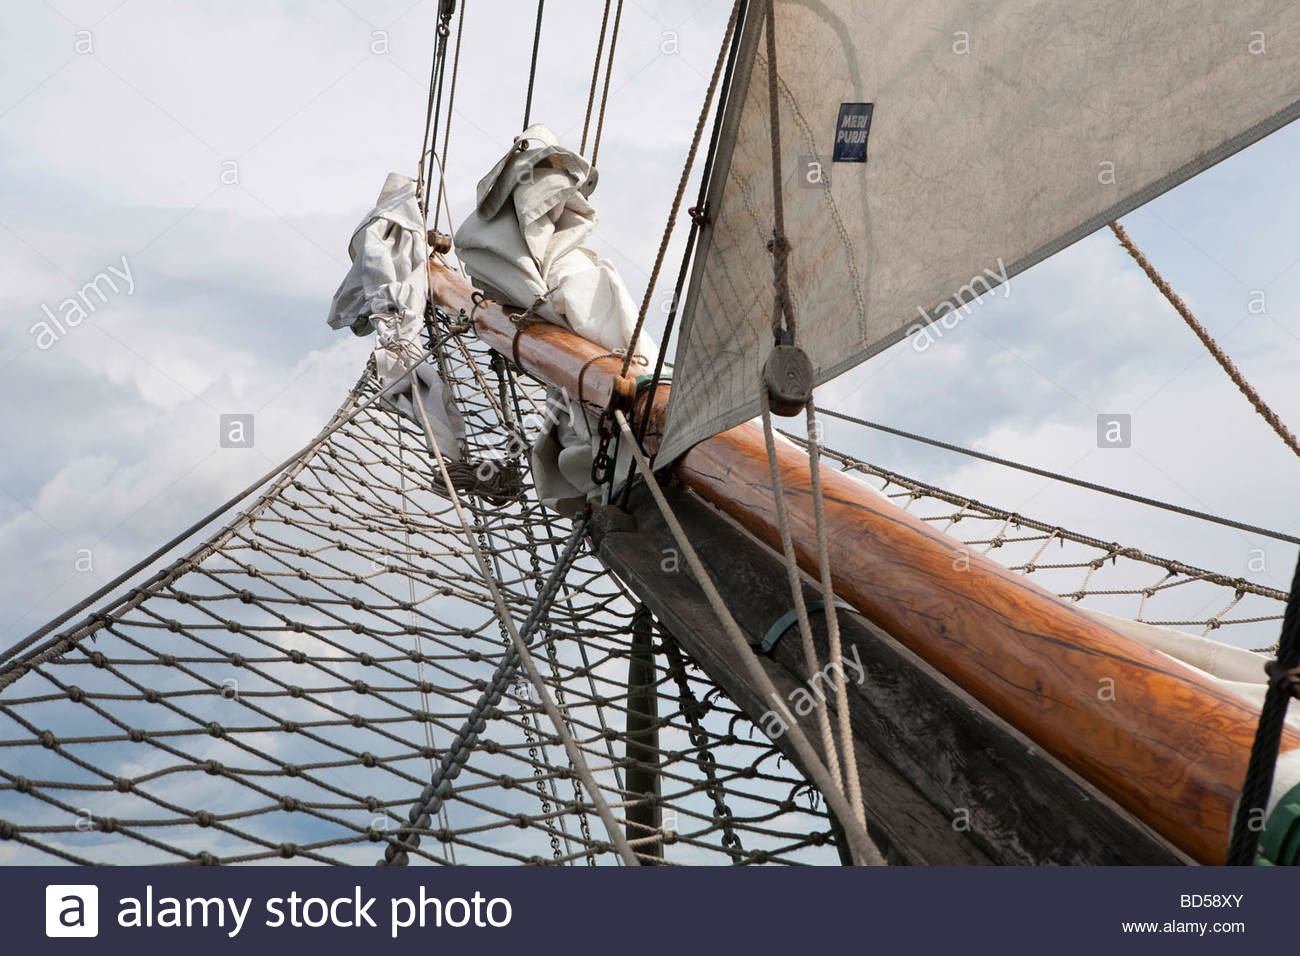 The bow of a sail ship - Stock Image